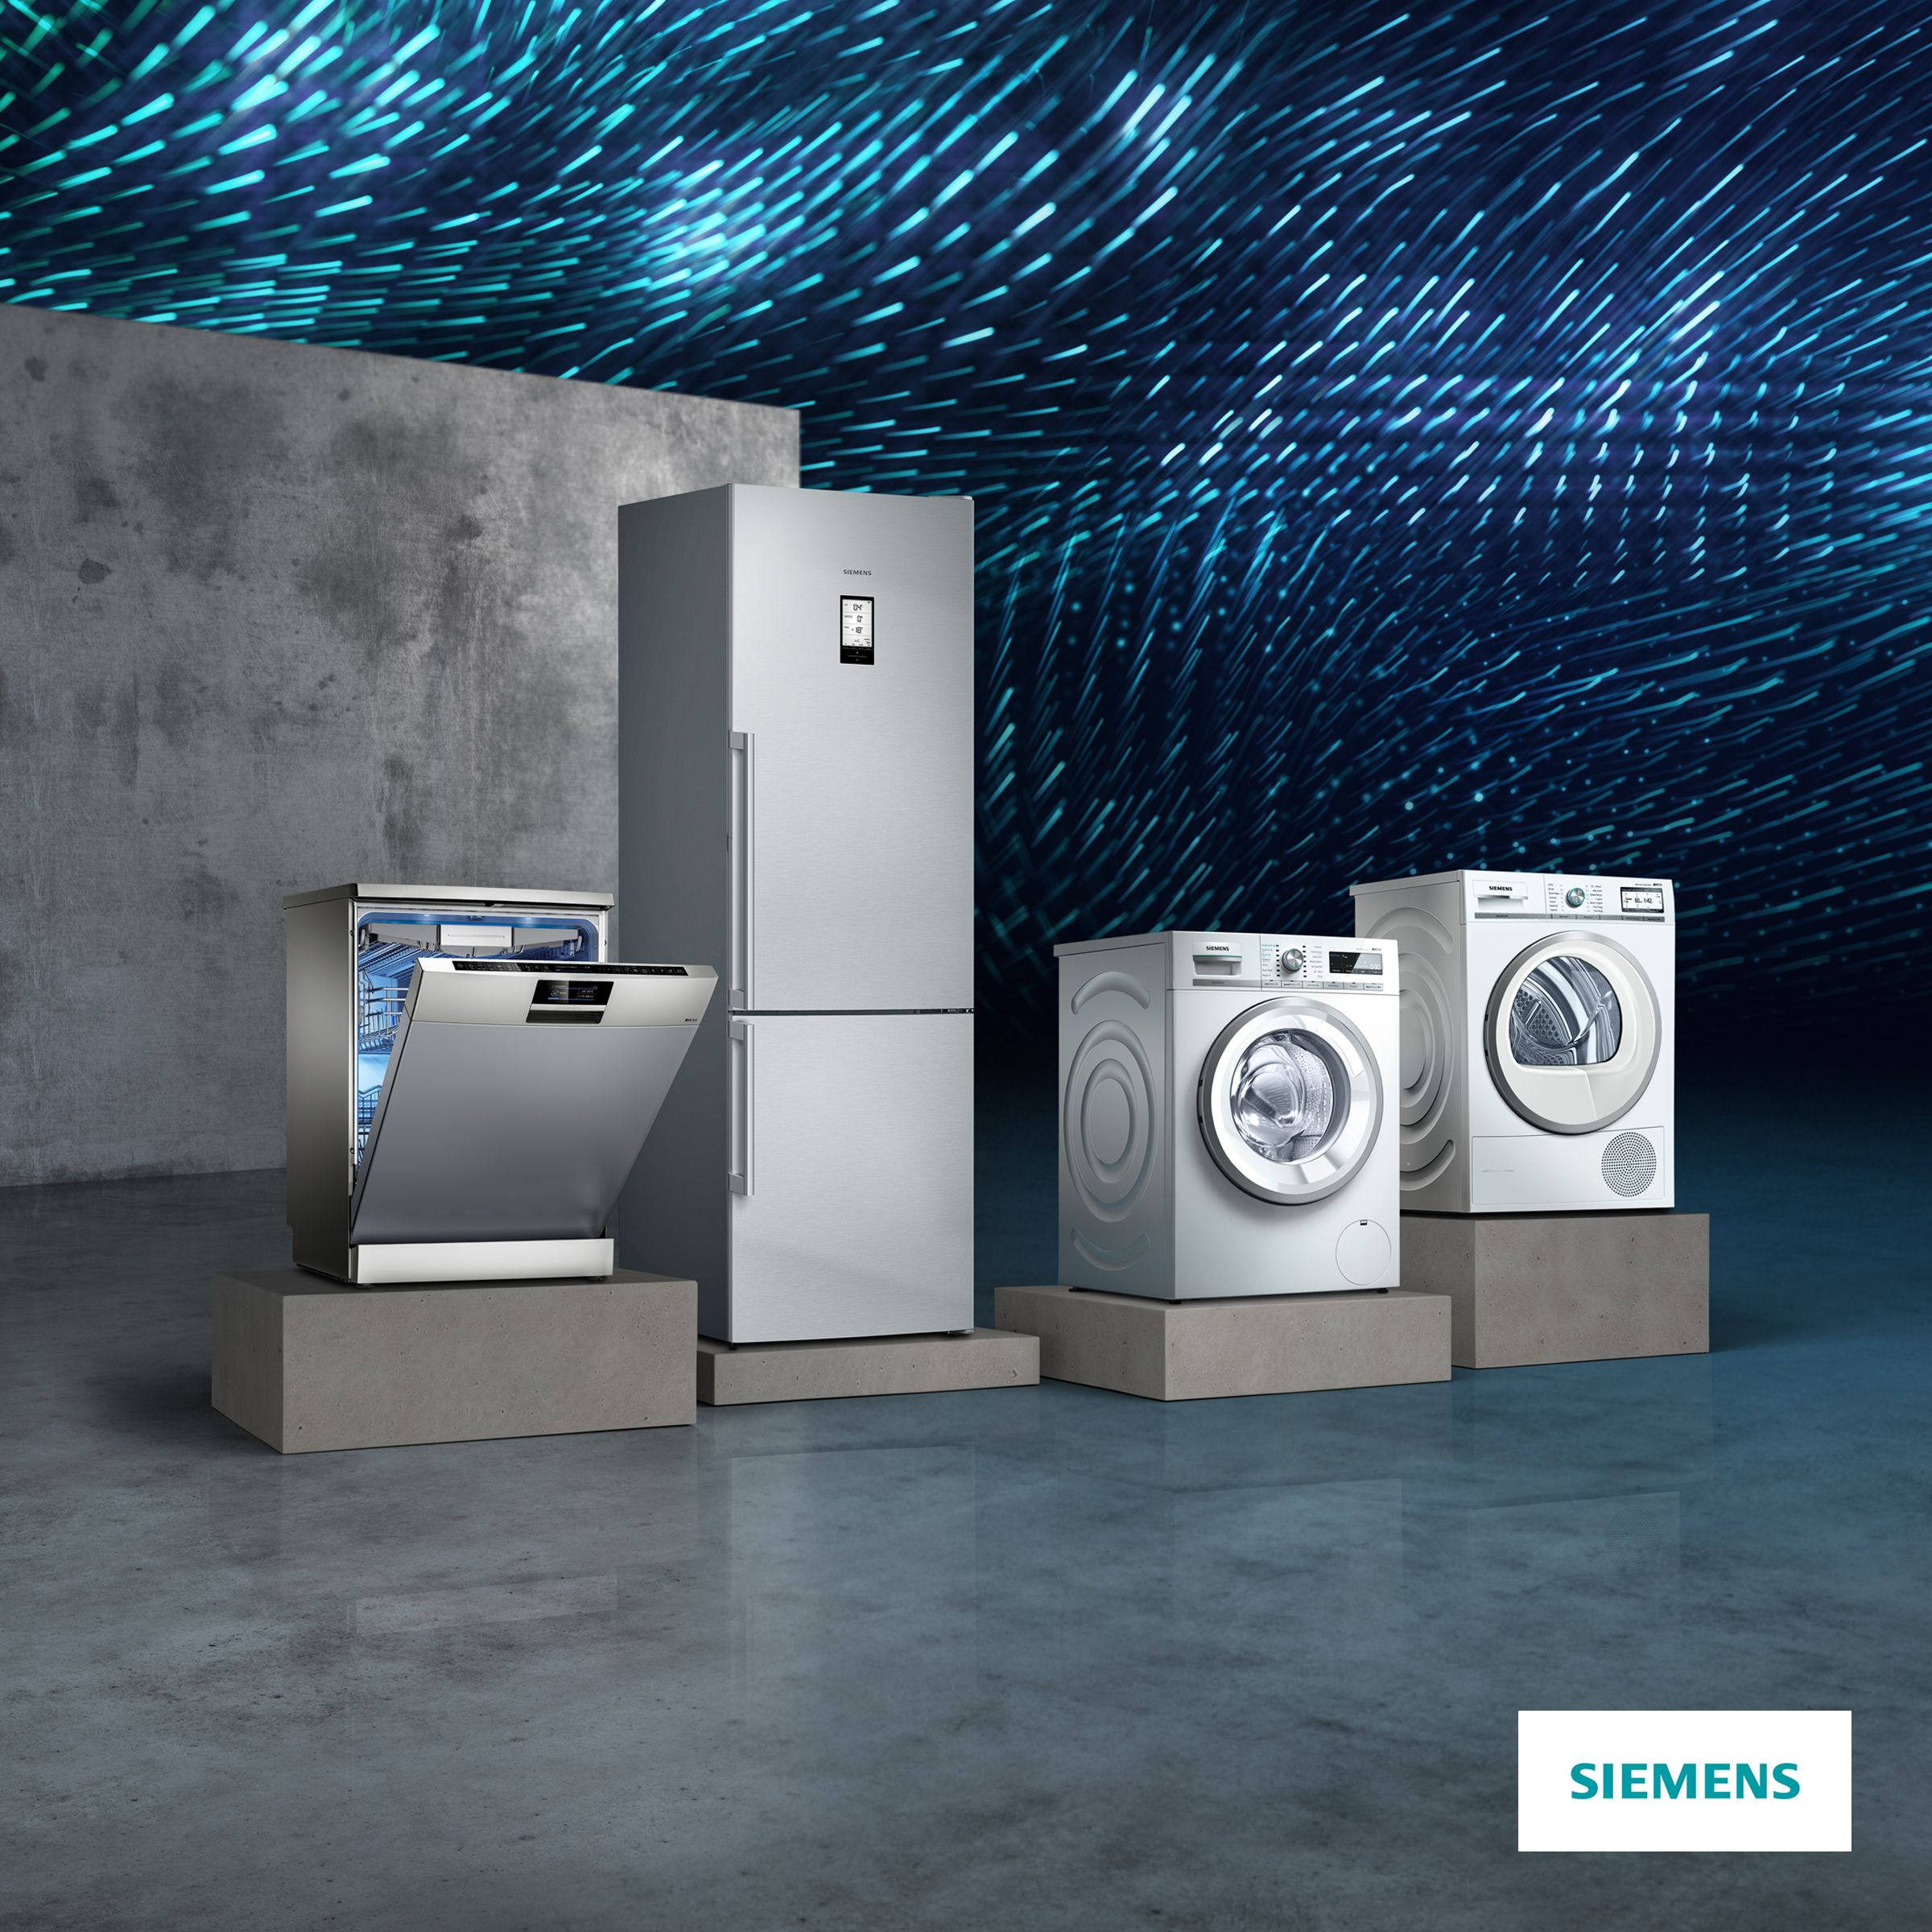 Siemens Fridges & Freezers offers